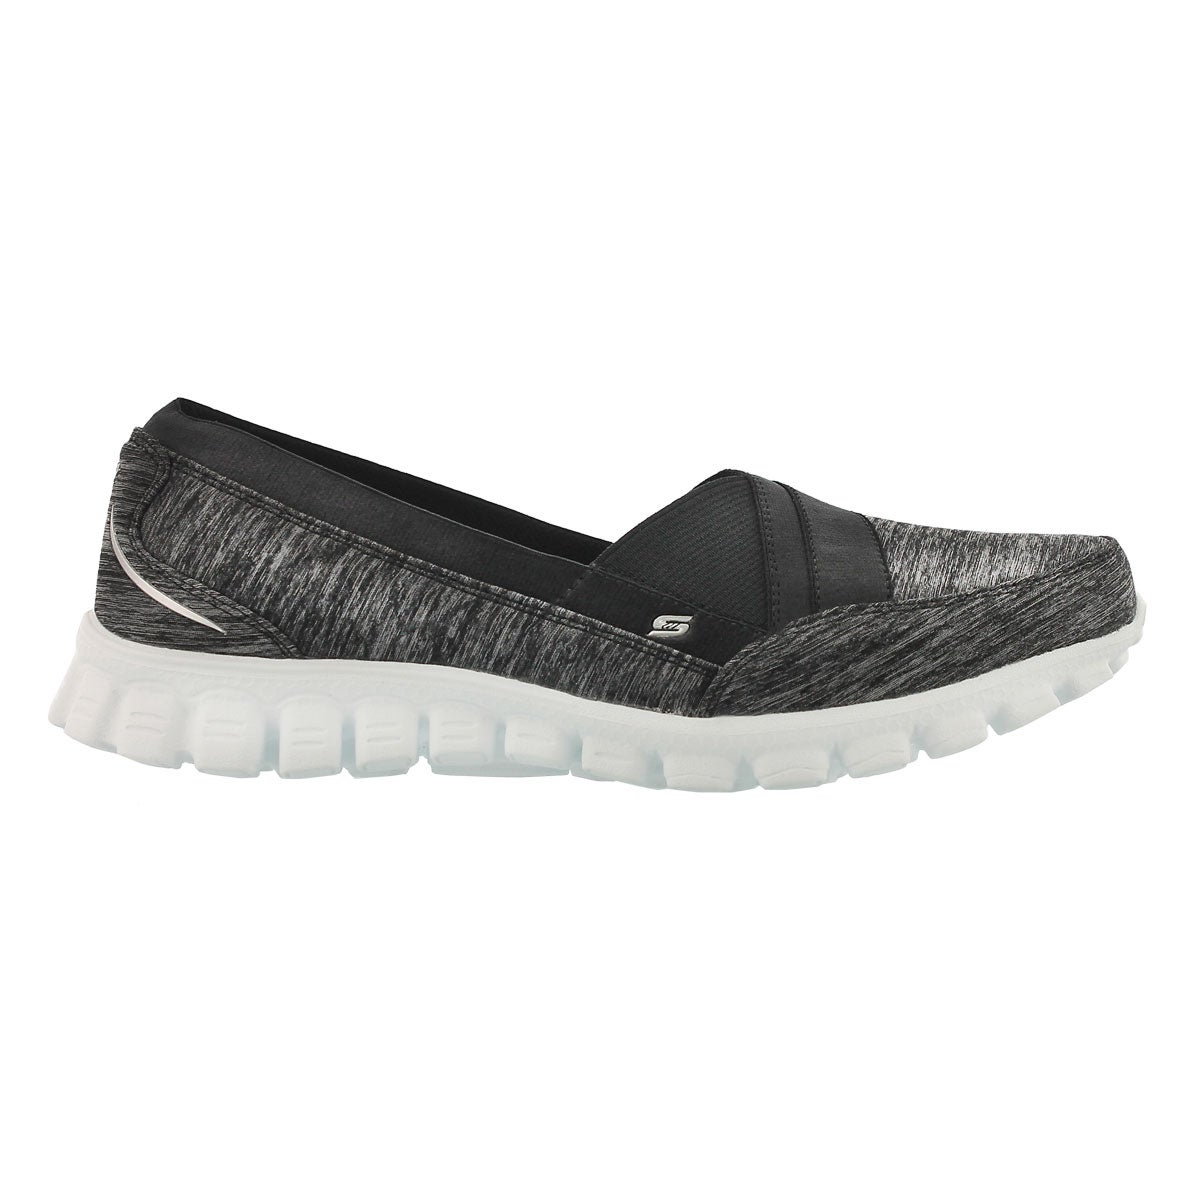 Lds Fascination blk/wht slipon walking